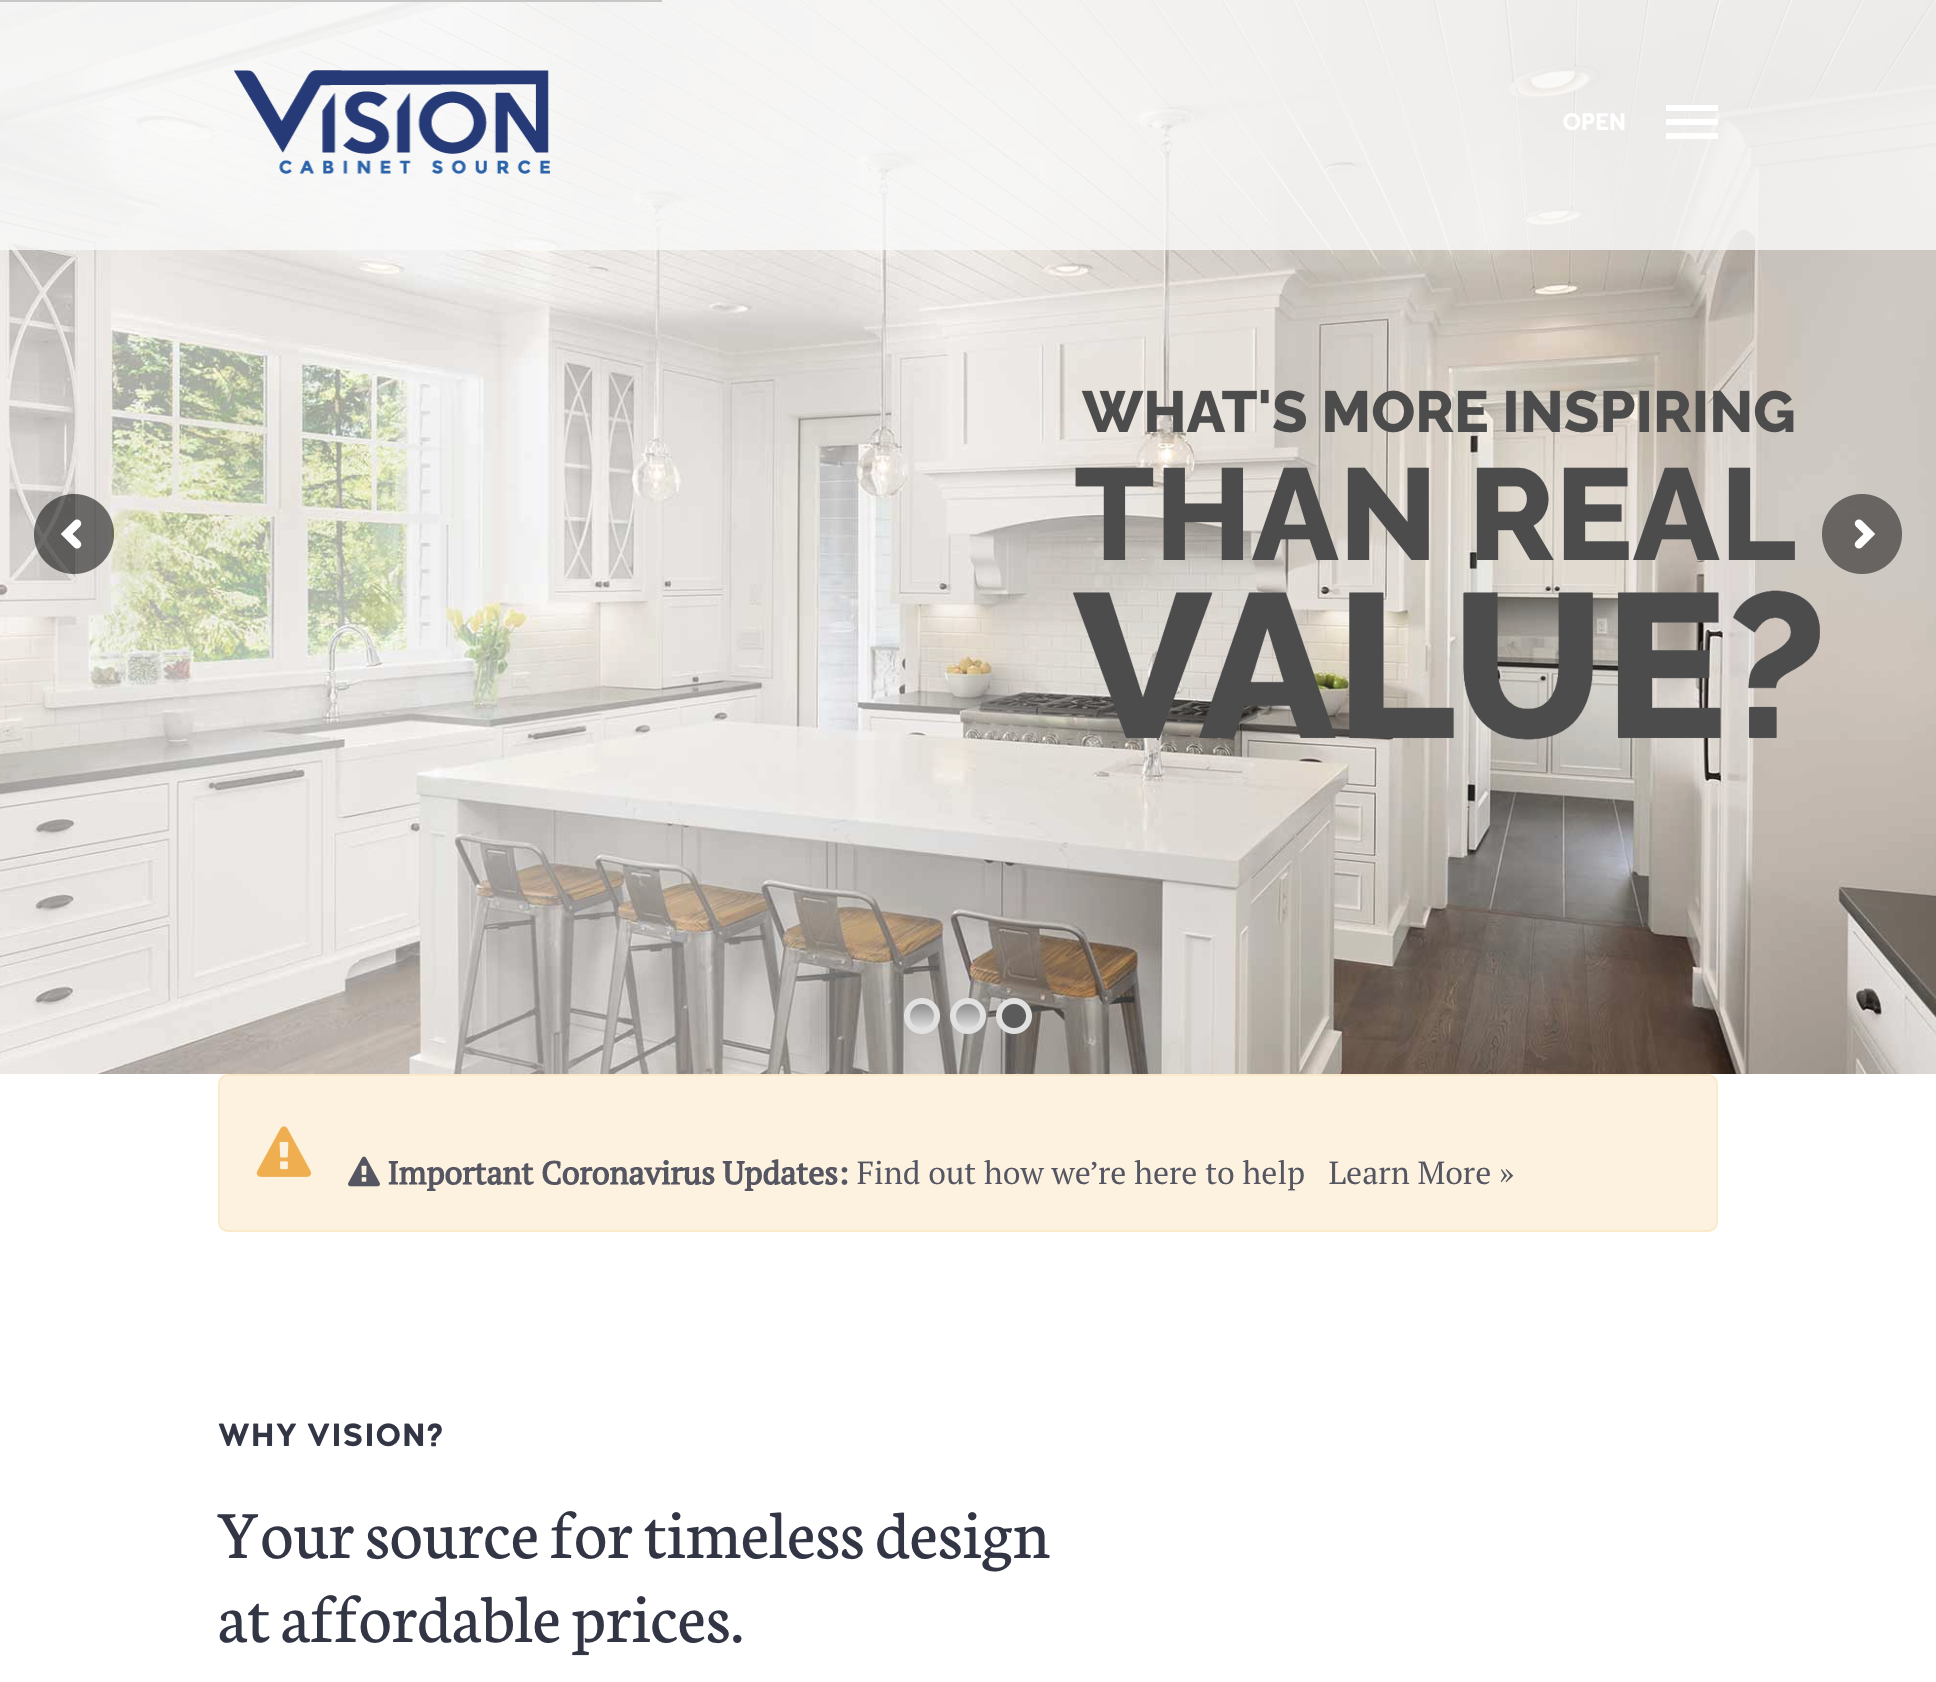 Vision Cabinets Web site